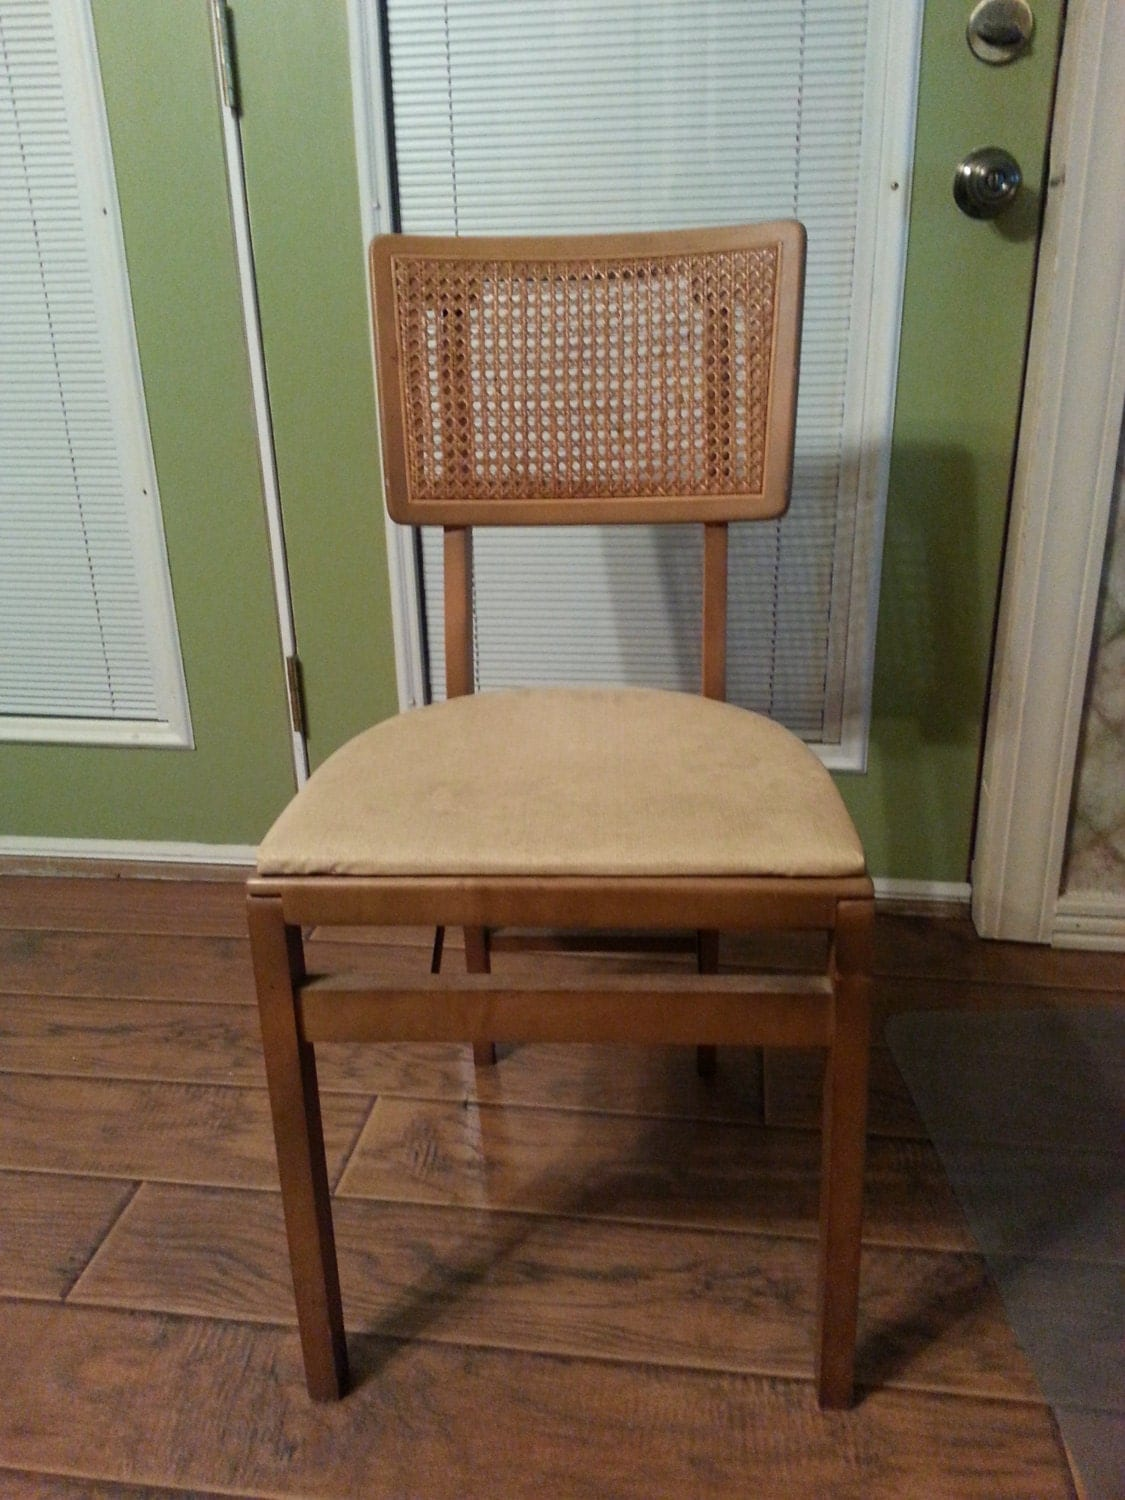 Vintage Cane Back Chairs Reserved Vintage Stakmore Folding Chair Cane Back Wood